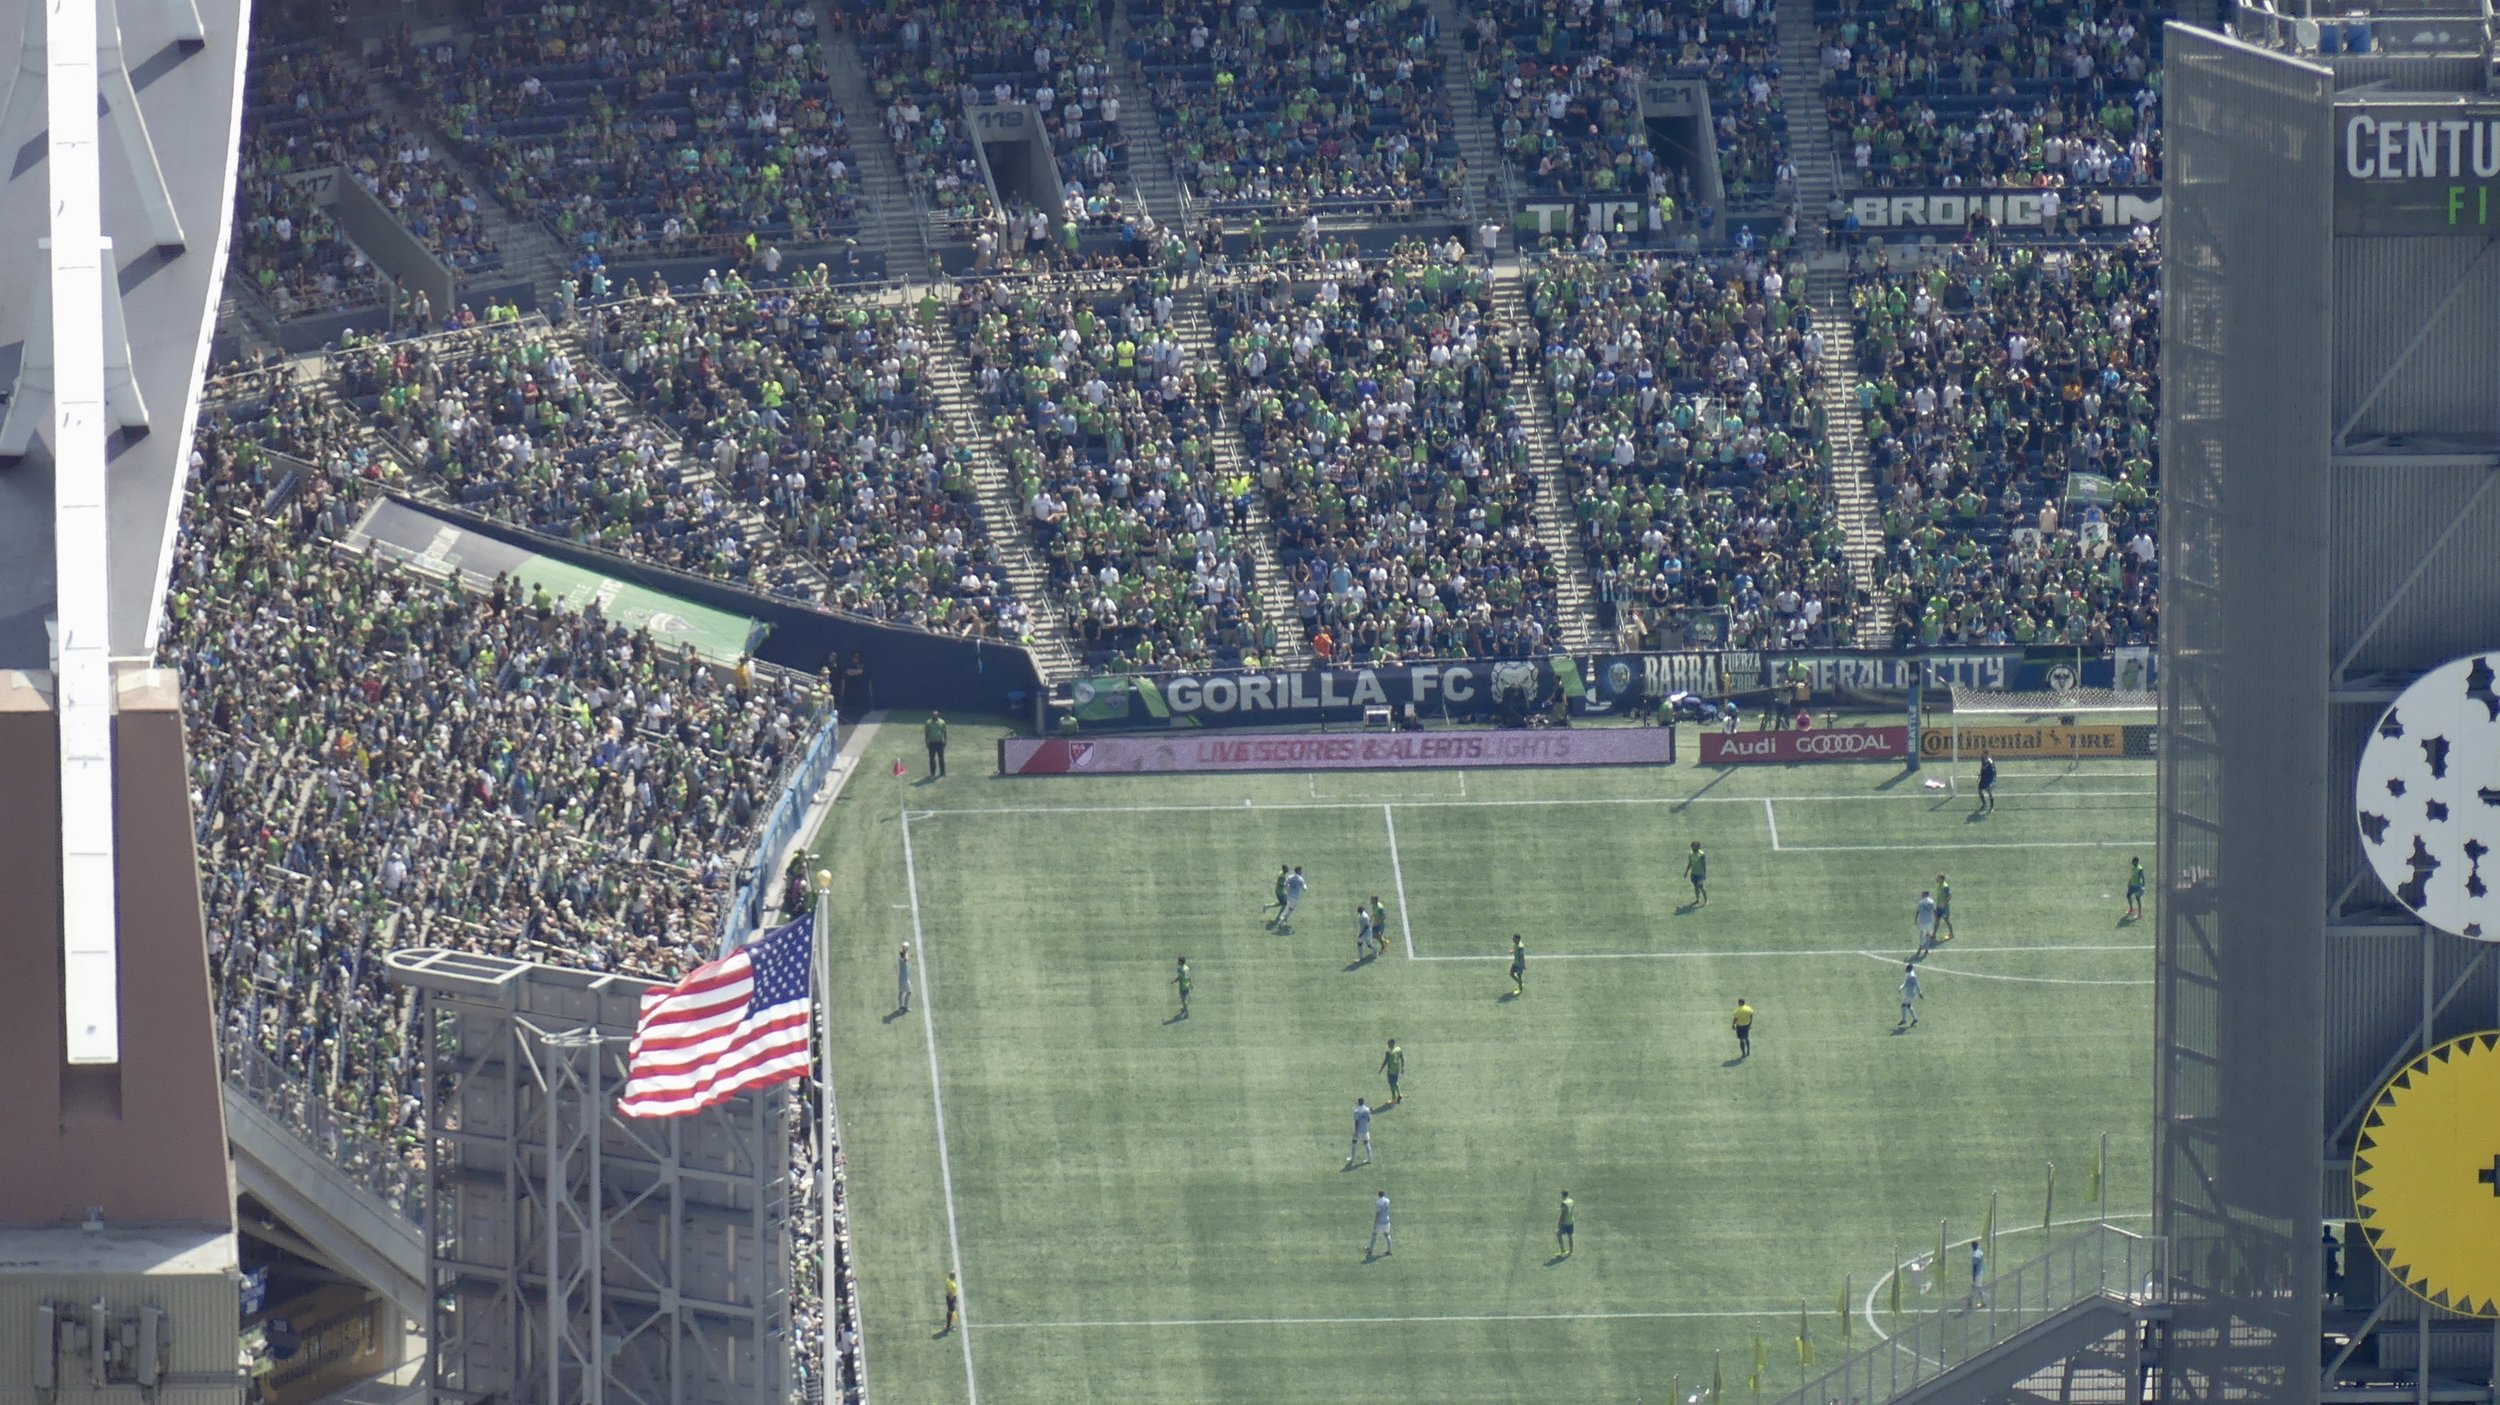 CenturyLink Field, home to the Sounders and the Seahawks (American football)